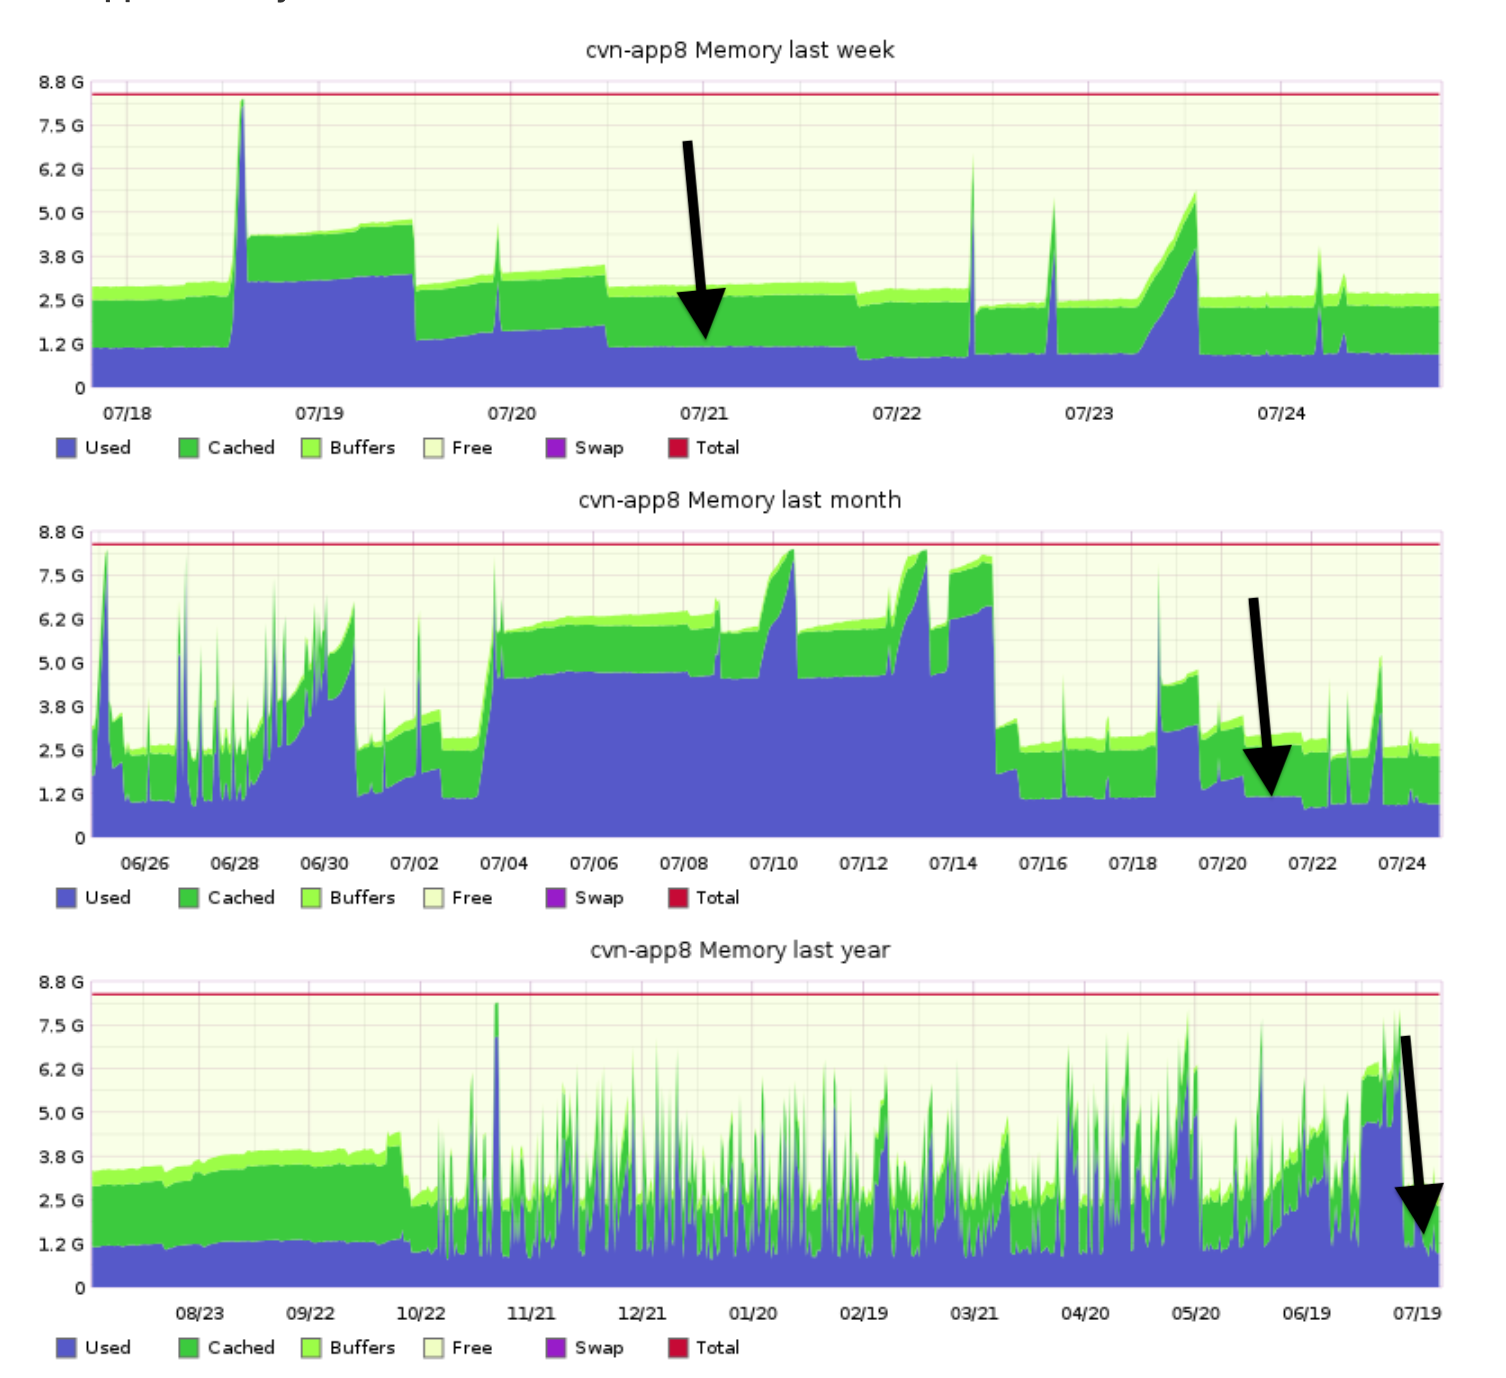 Graph of memory usage from cvn-app8 by week, month, and year